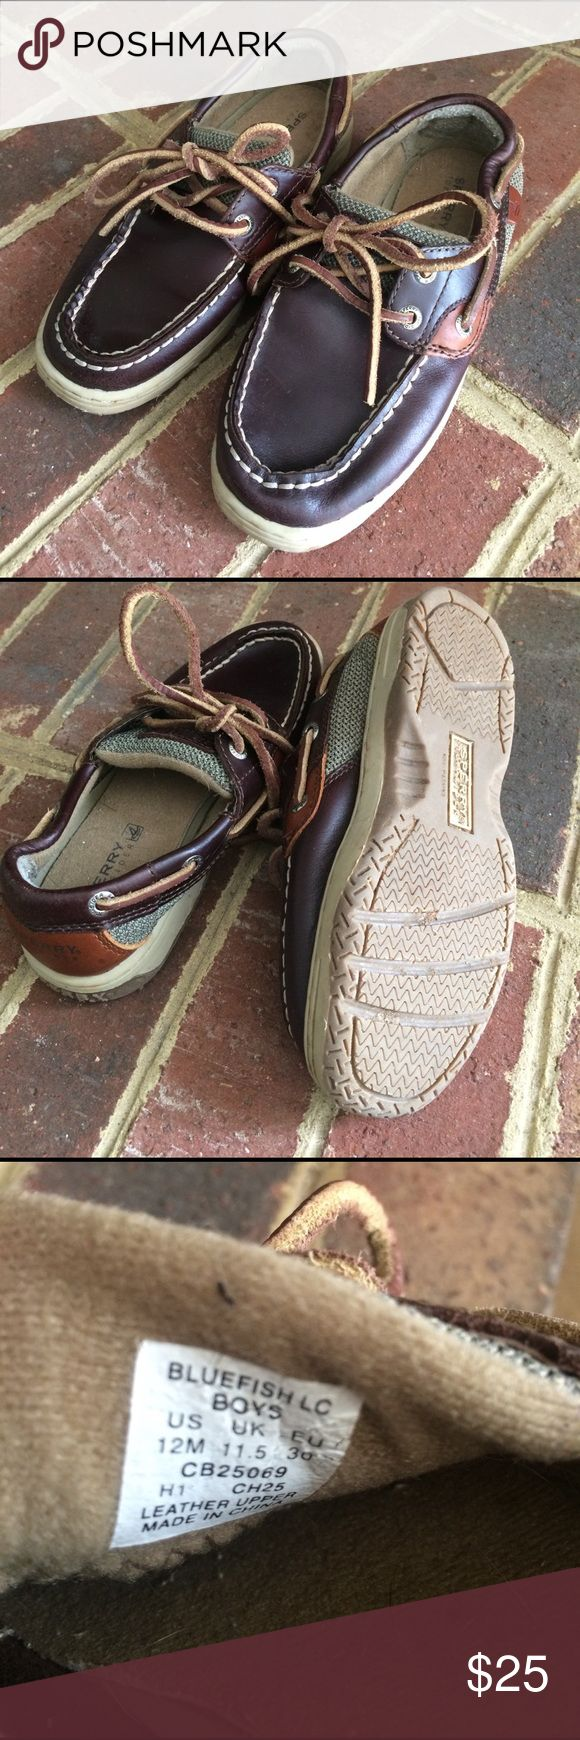 Boys Sperrys Brown leather Sperrys, style is Bluefish. Minimal signs of wear! Sperry Top-Sider Shoes